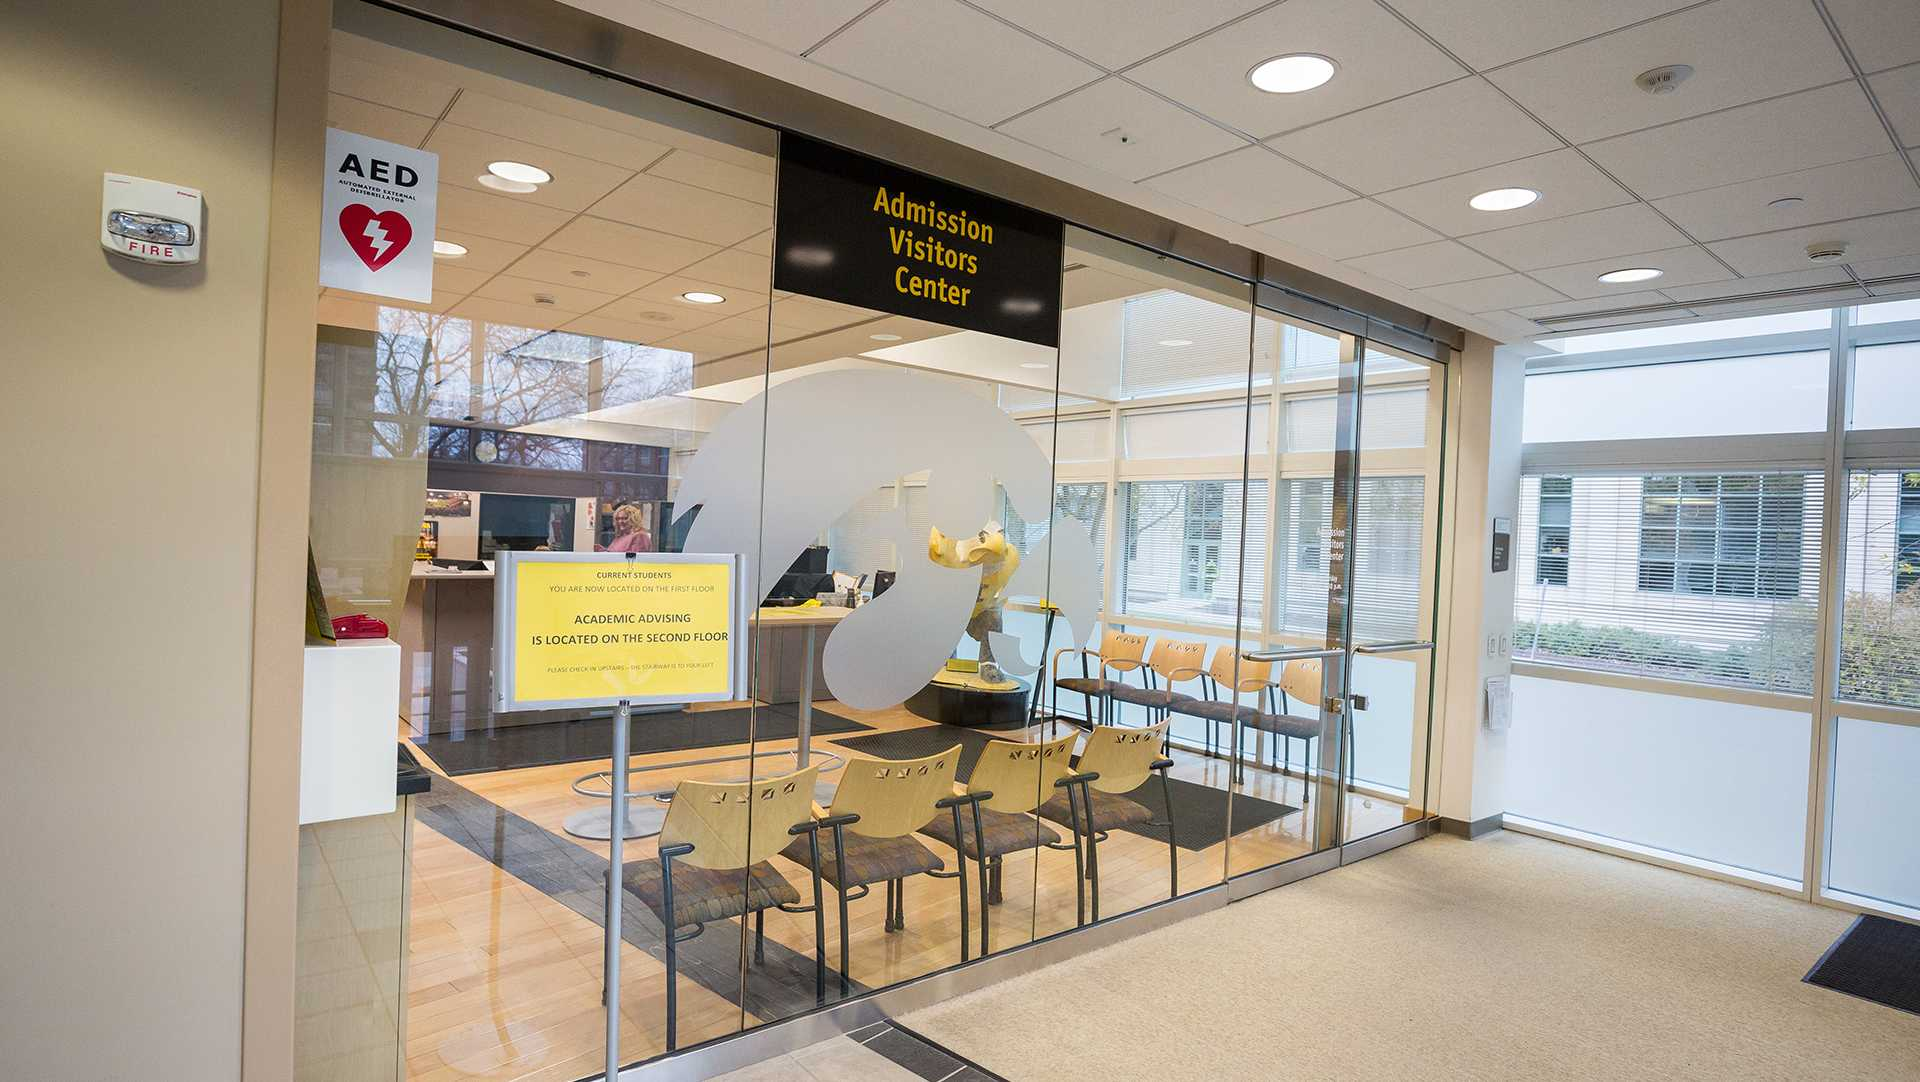 The University of Iowa's Admissions Visitor's Center, inside the Pomerantz Center building, on Monday, Oct. 30, 2017 (David Harmantas/The Daily Iowan)